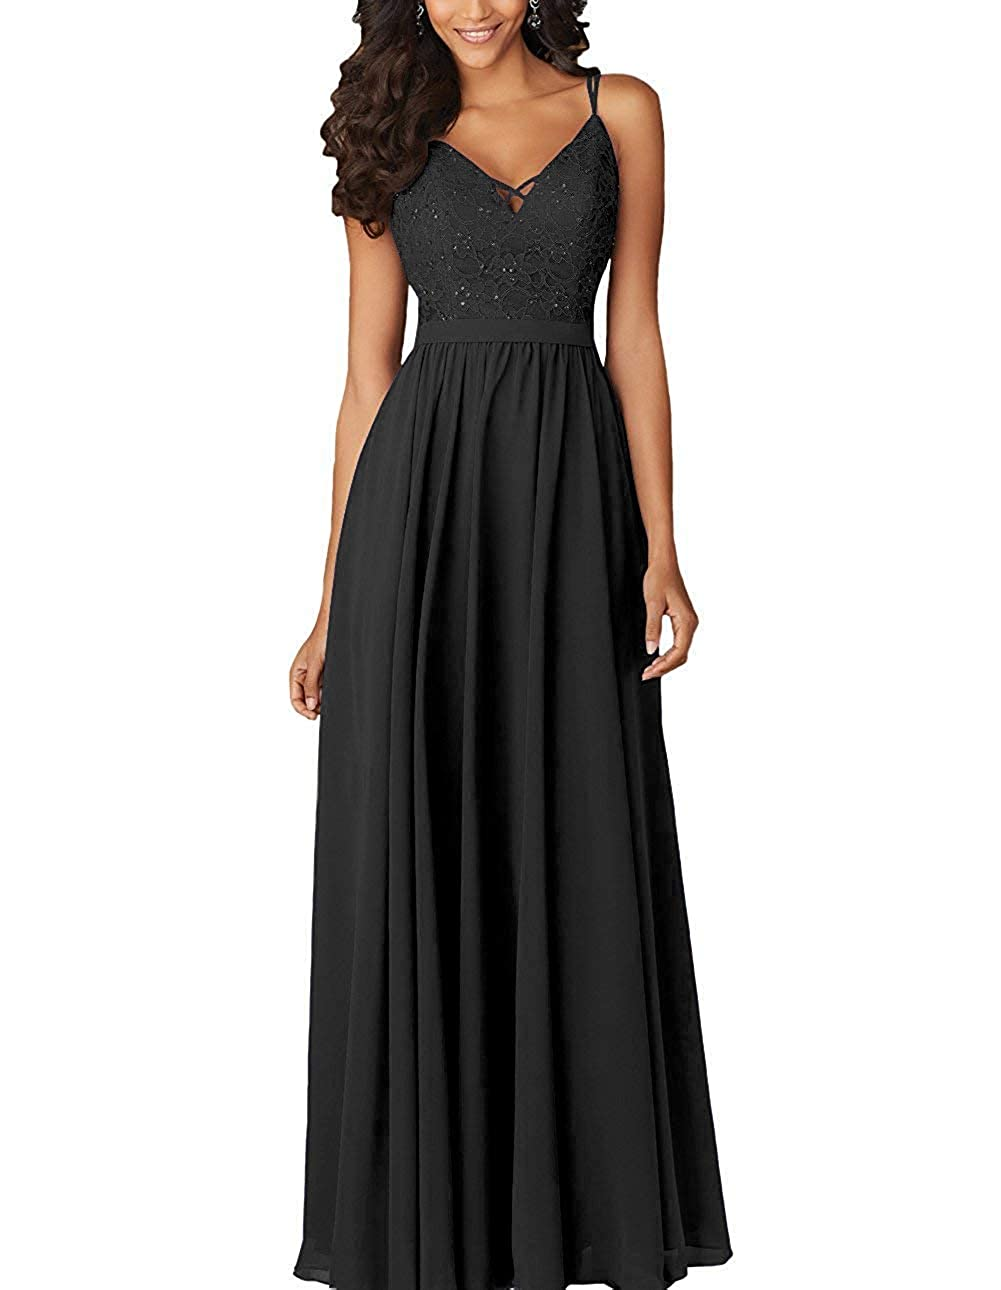 Black ZLQQ Womens Bridesmaid Dresses Long Beaded Formal Spaghetti Strap Evening Party Gowns